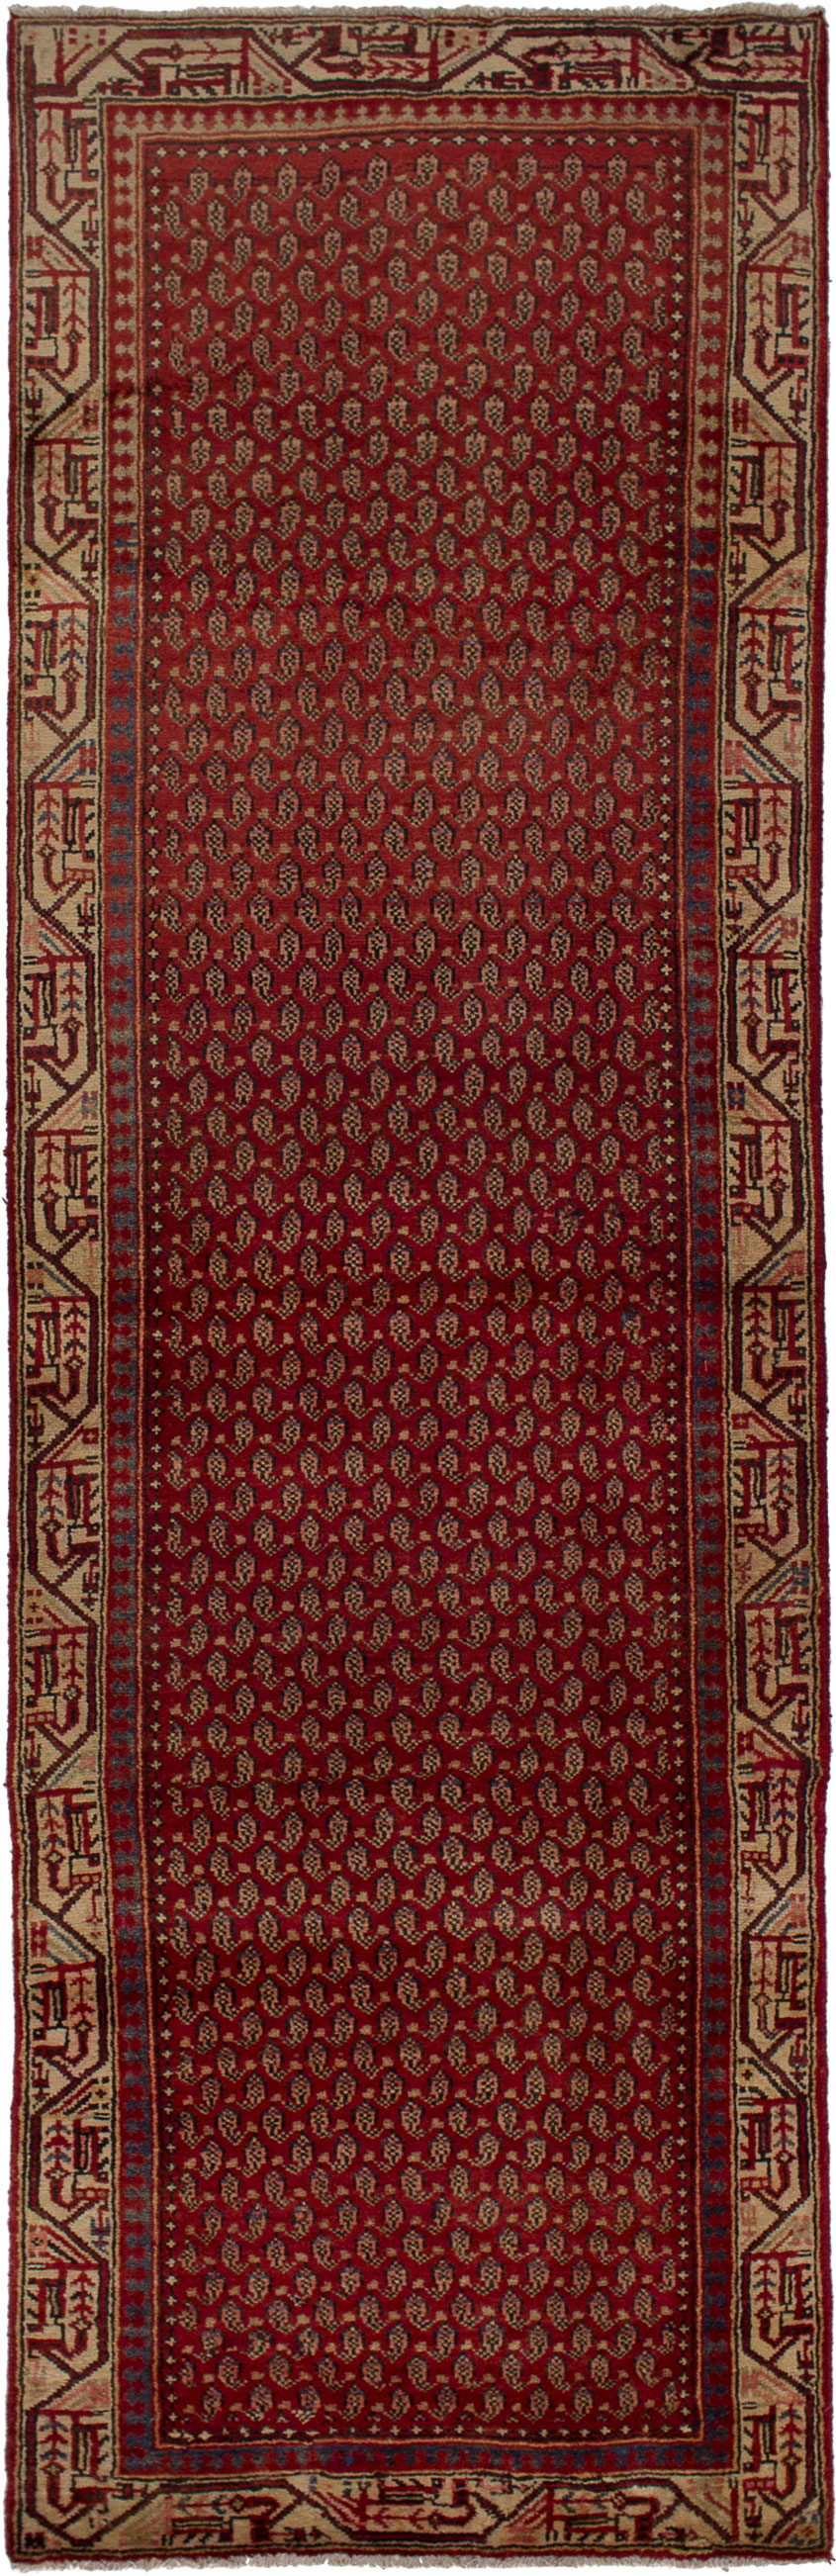 """Hand-knotted Arak Red Wool Rug 3'1"""" x 10'2"""" Size: 3'1"""" x 10'2"""""""